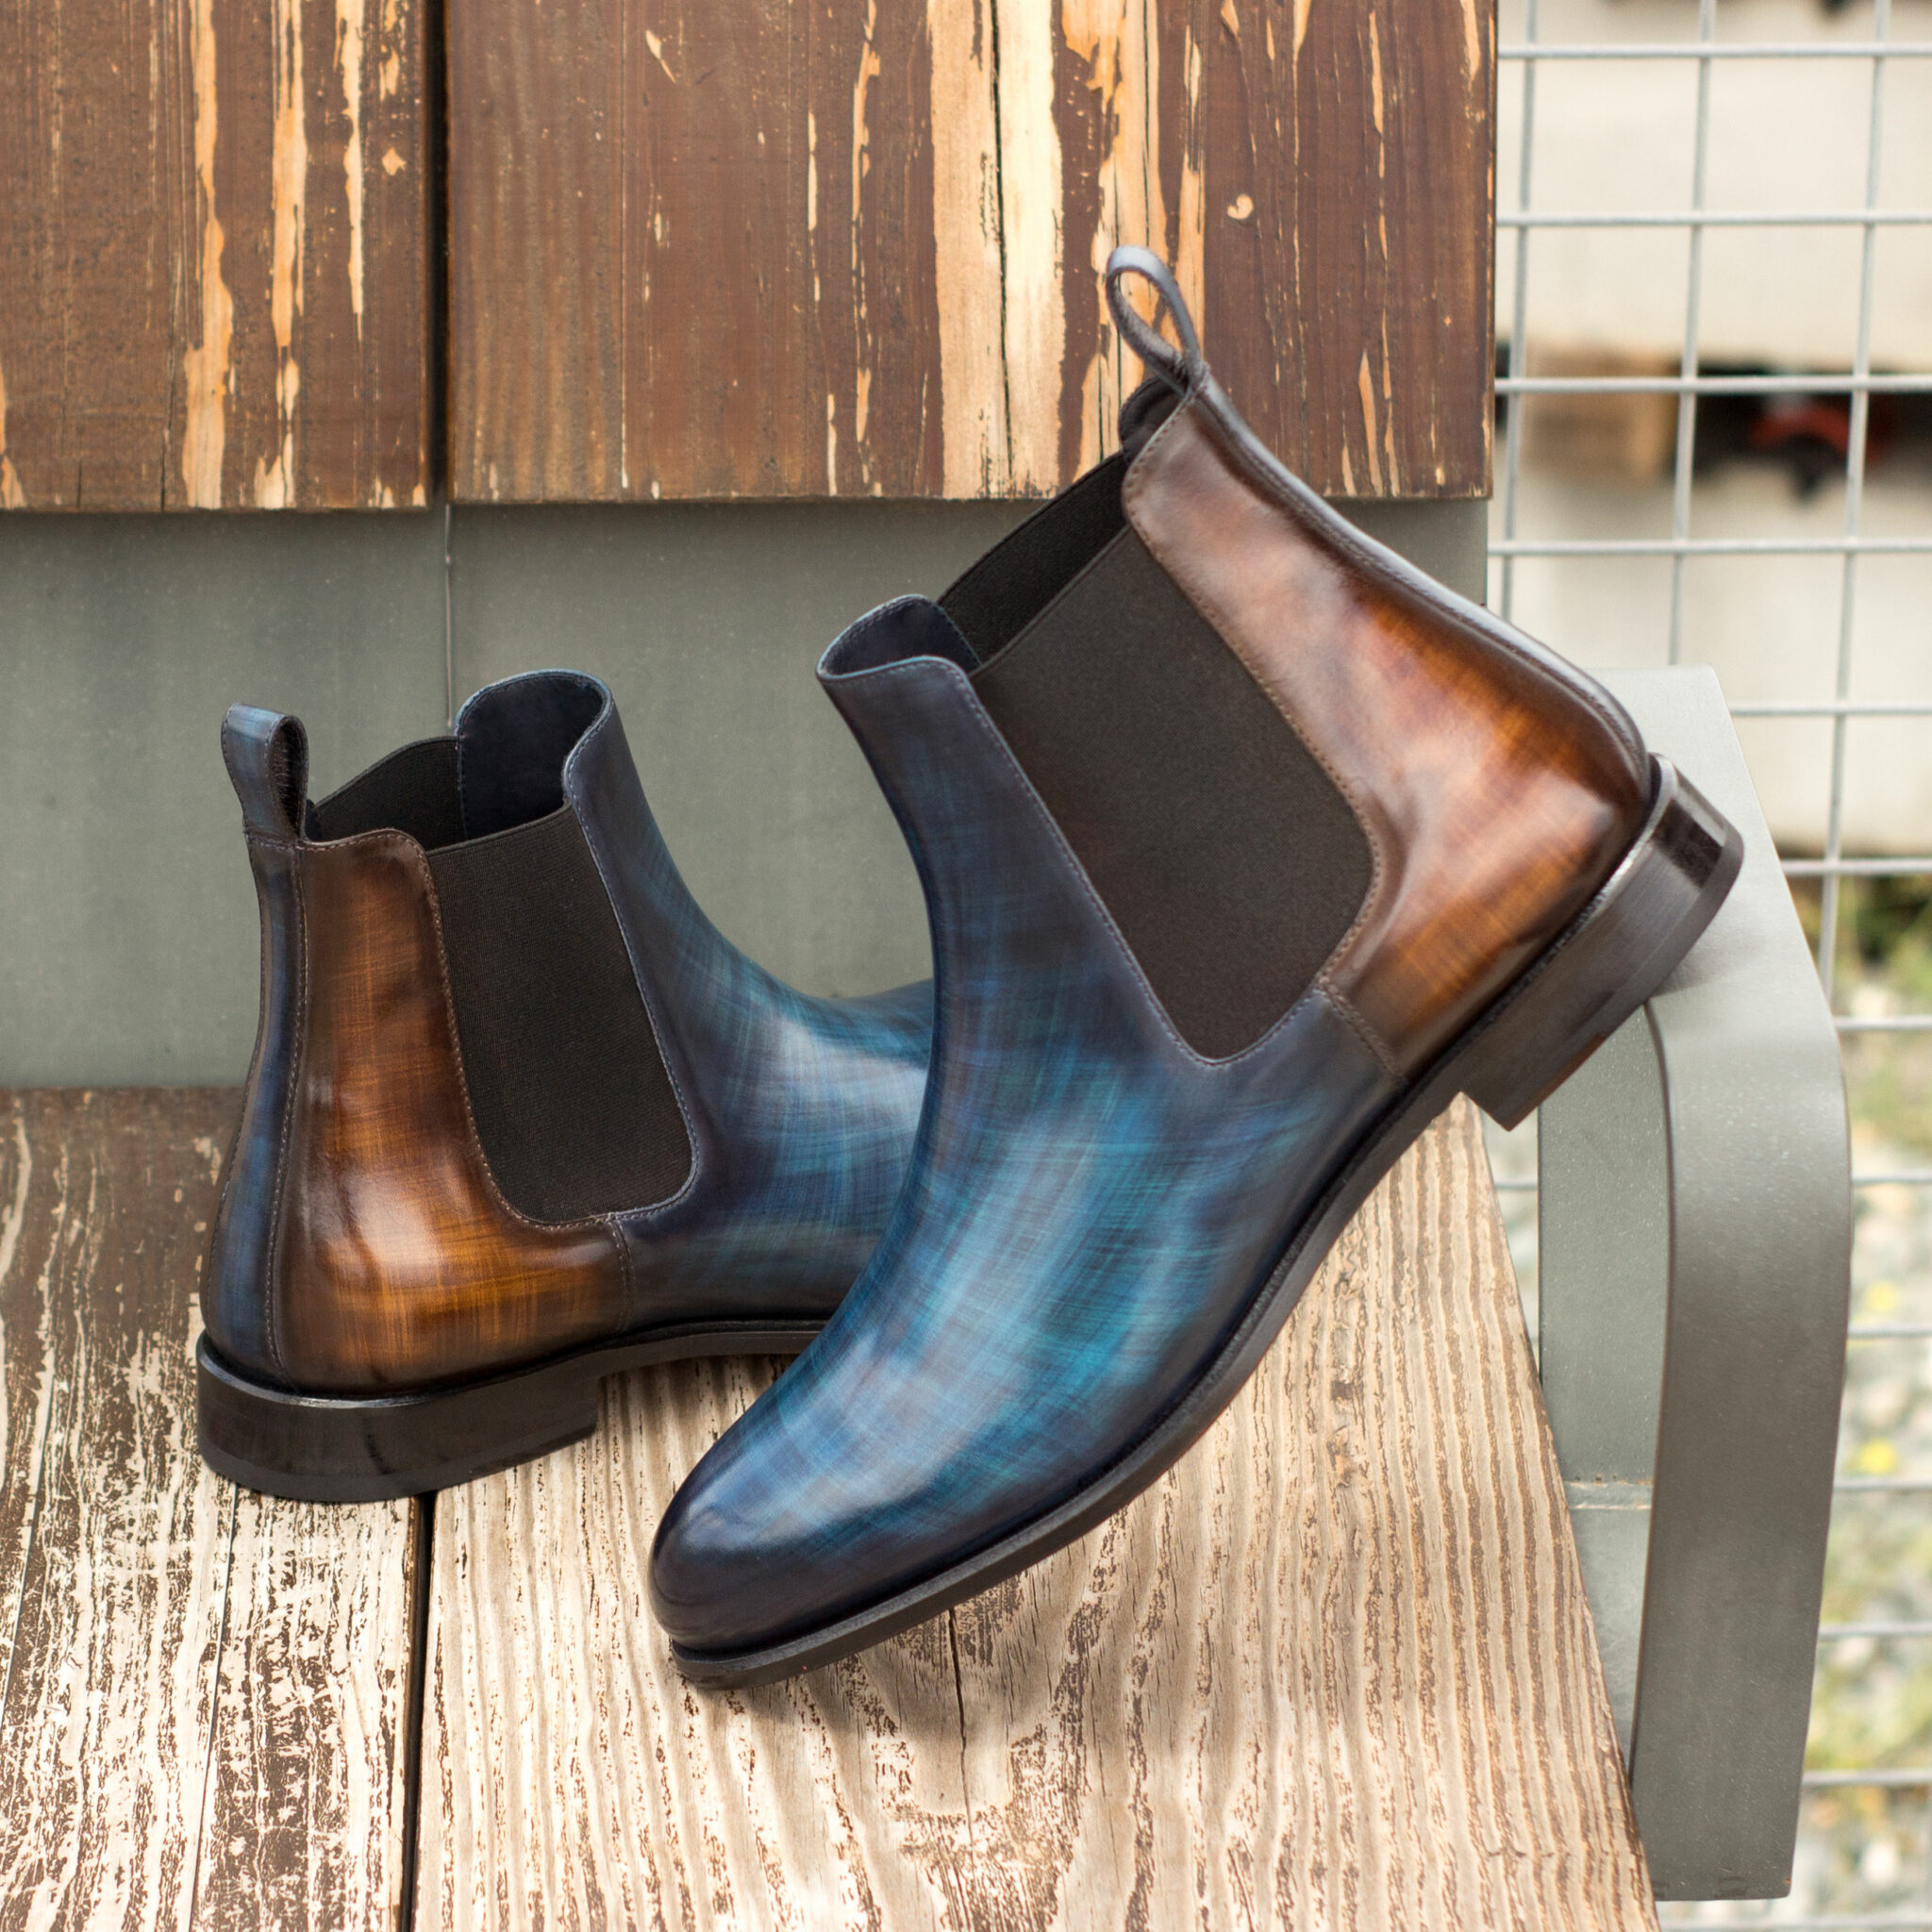 Chelsea boot denim crust patina + brown crust patina : 360€